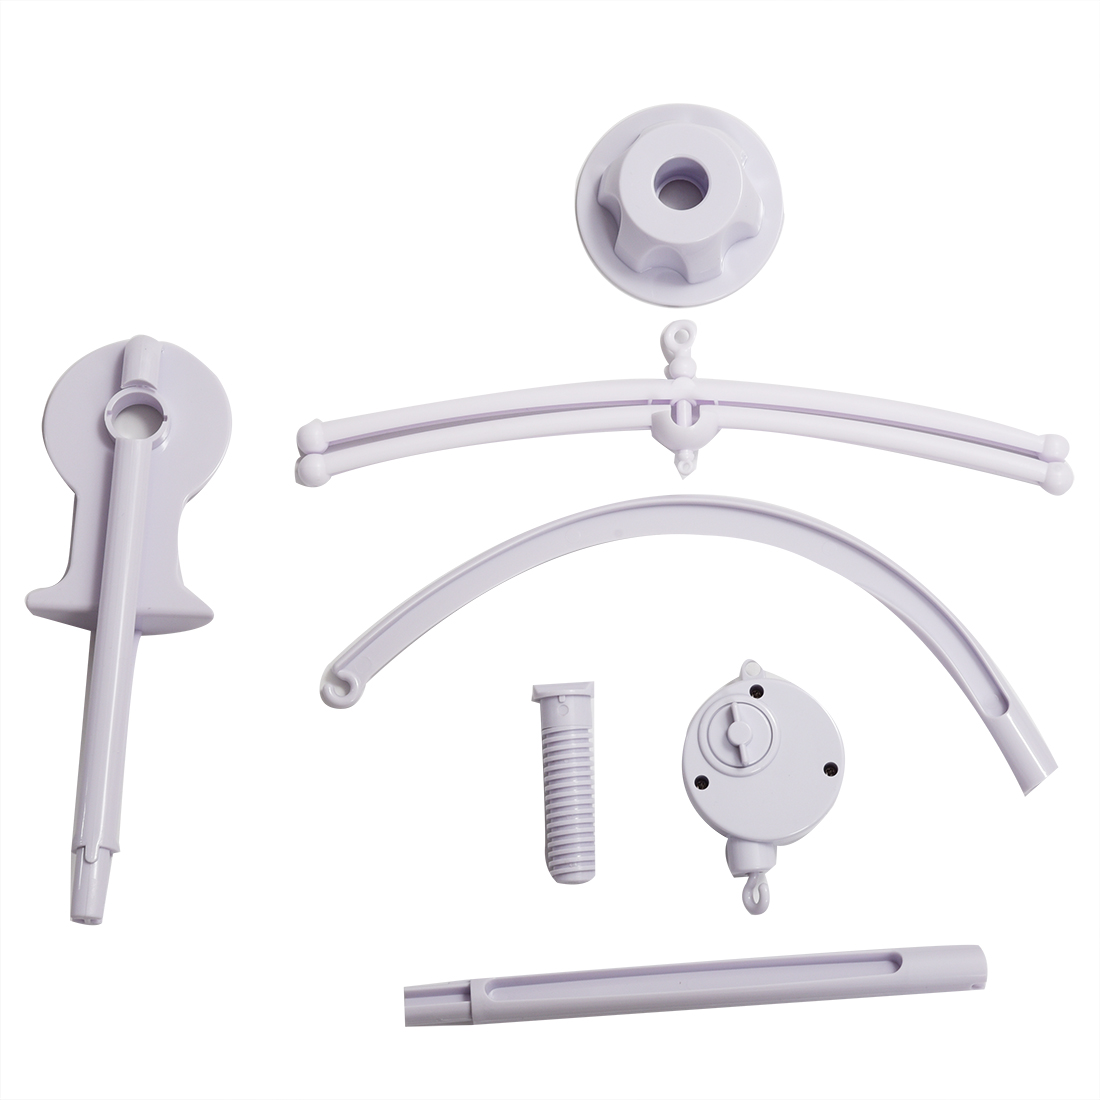 Best Sale Baby toys White Rattles Bracket Set Baby Crib Mobile Bed Bell Toy Holder Arm Bracket Wind-up Music Box rotary baby mobile crib bed toy melodies song kids mobile windup bell electric autorotation music box baby educational toys